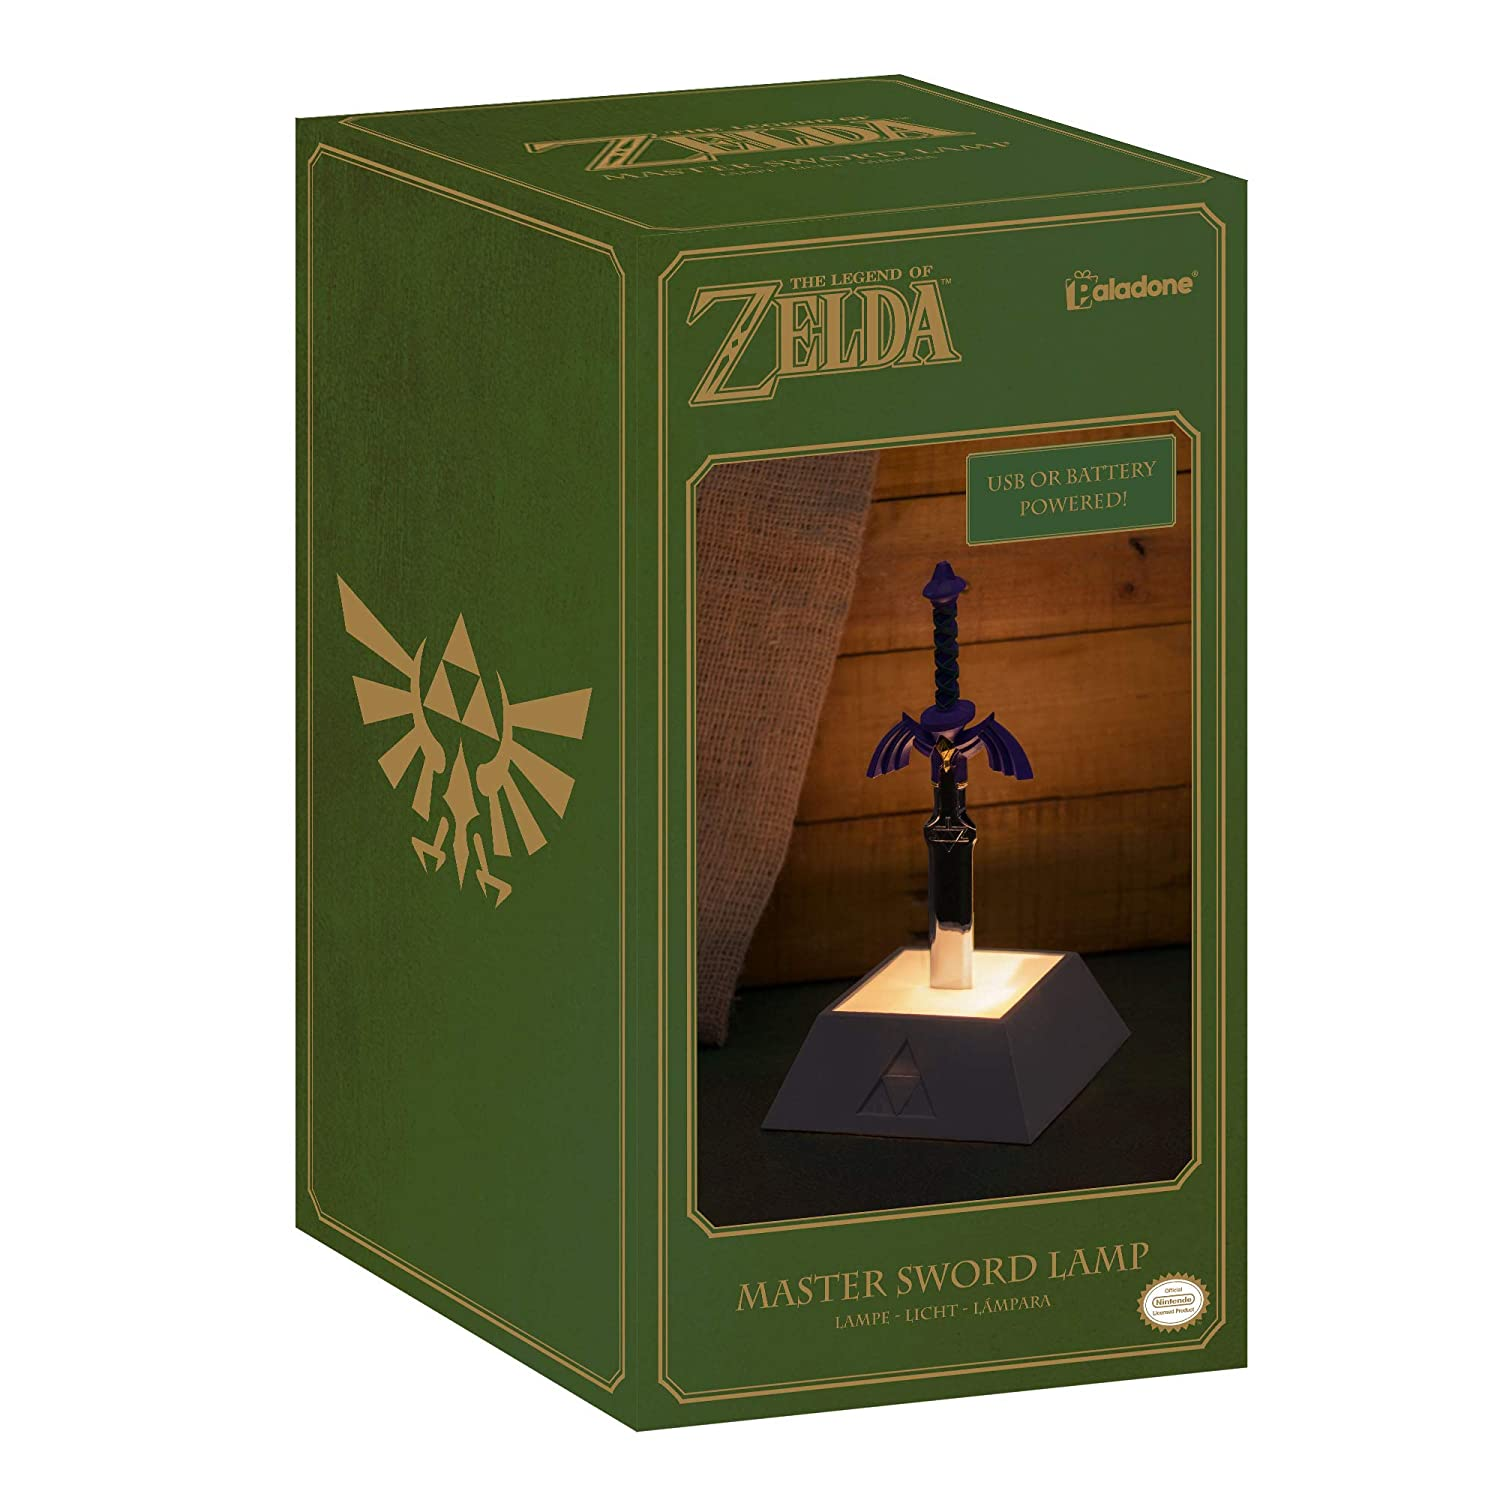 Legend Of Zelda Master Sword Lamp 3d Iconic Night Light Nintendo Usb Or Battery Powered 30cm Tall Ideal For Bedrooms Office Study Dining Room